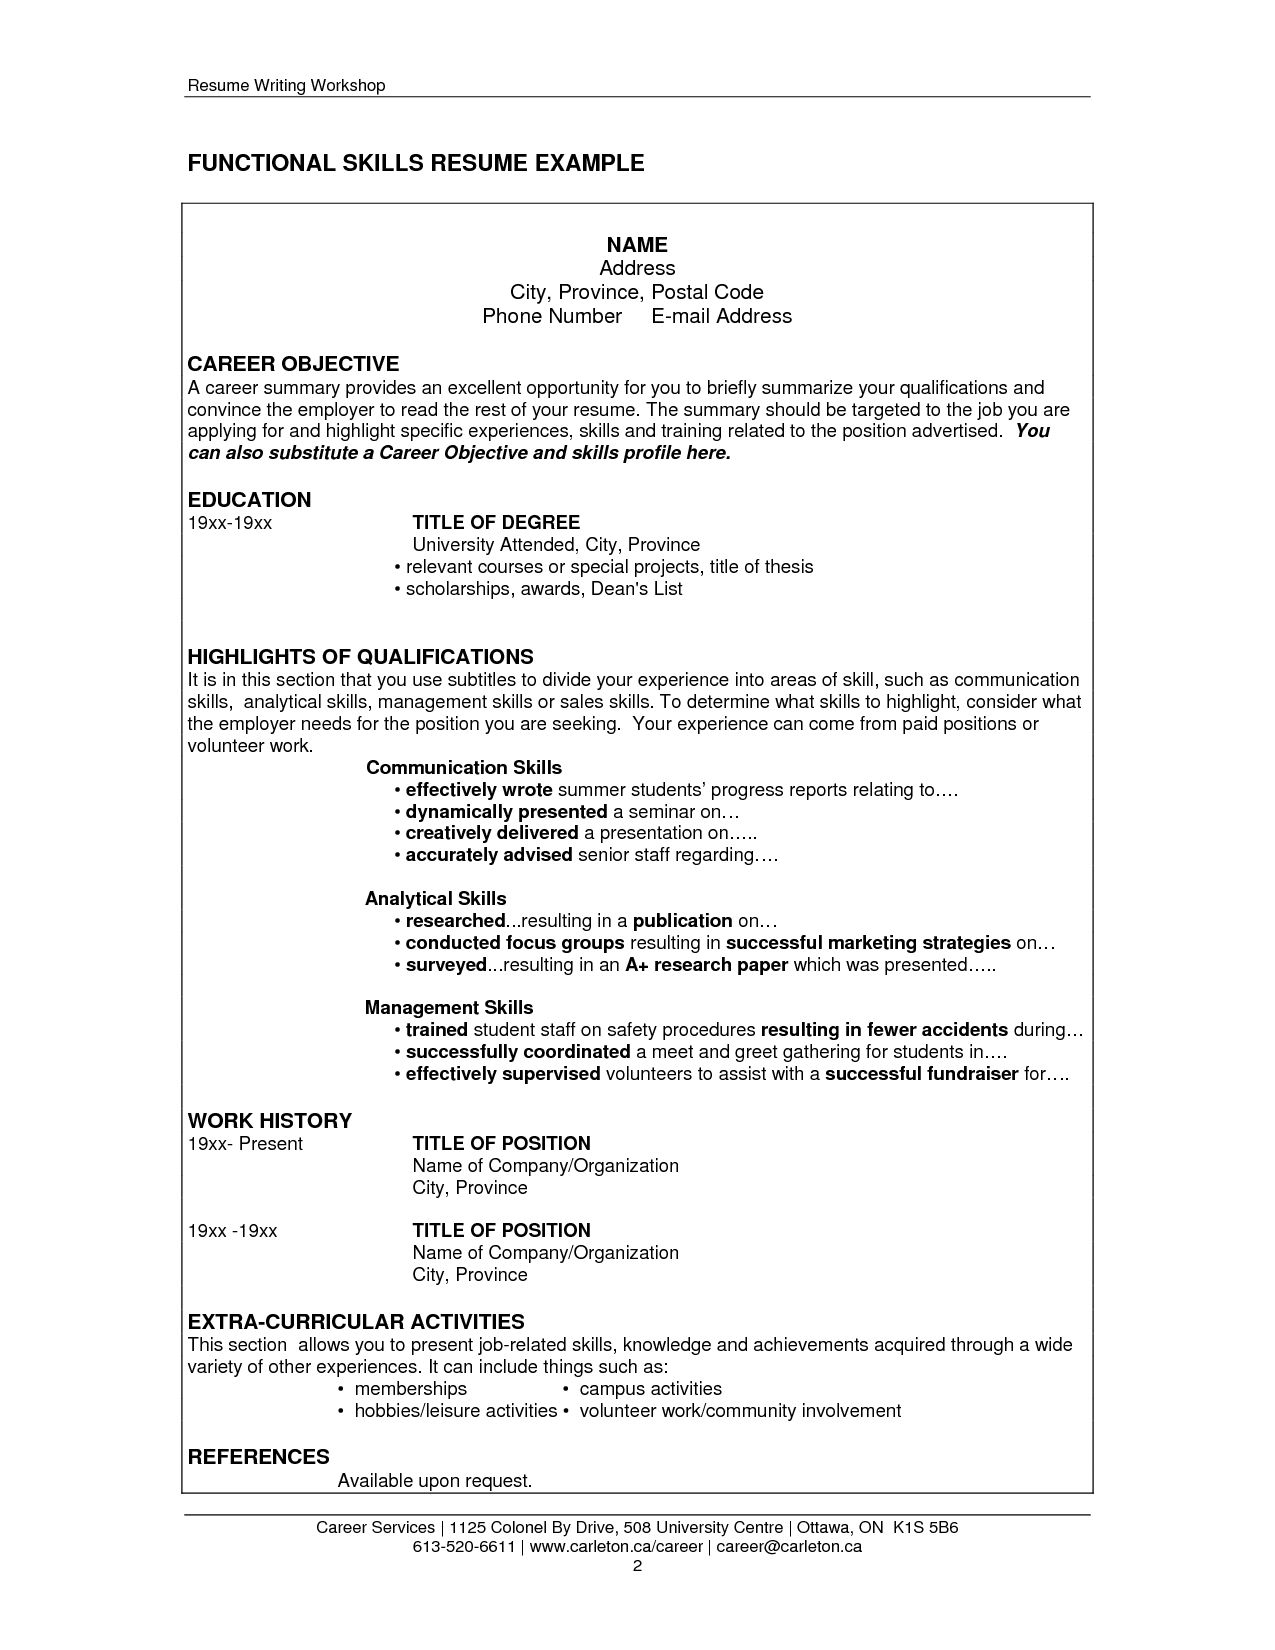 Skills On A Resume Examples Resume Examples Skills Section 57A660016 New Resume Skills And